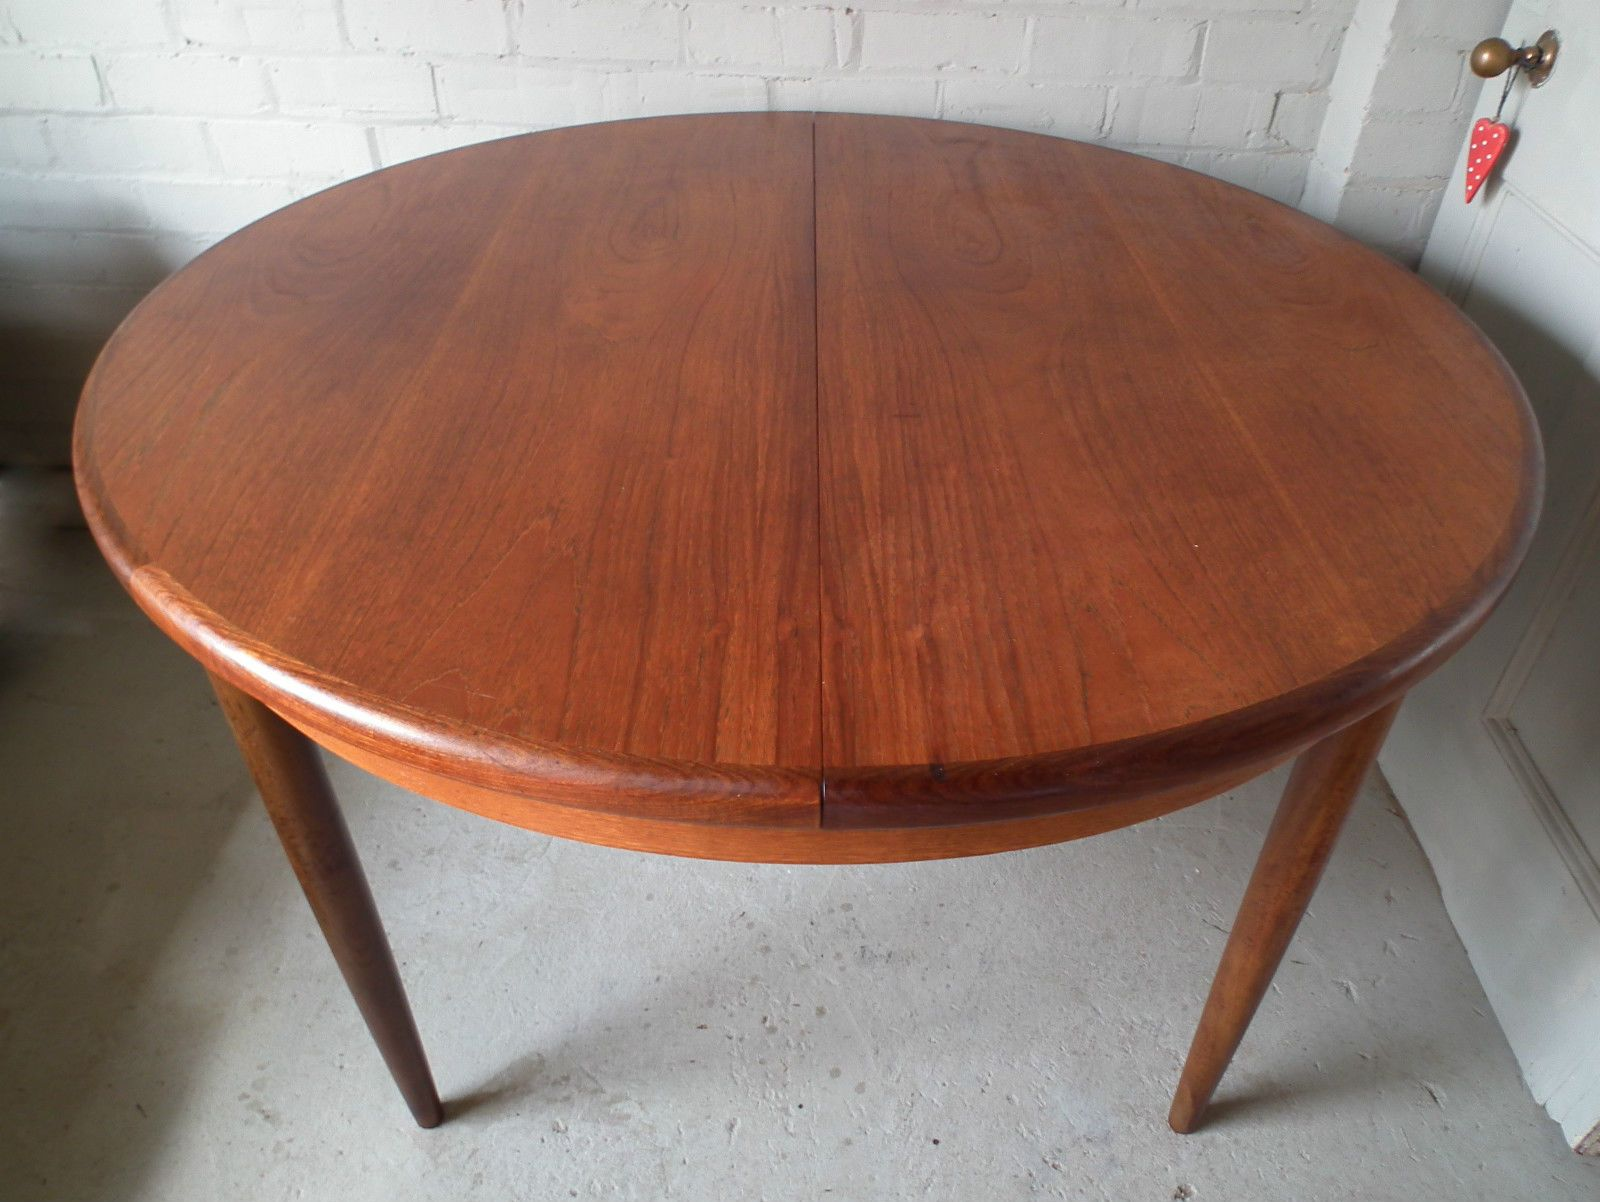 Vintage Retro Teak G PLAN FRESCO Round Extending Dining Table 60s